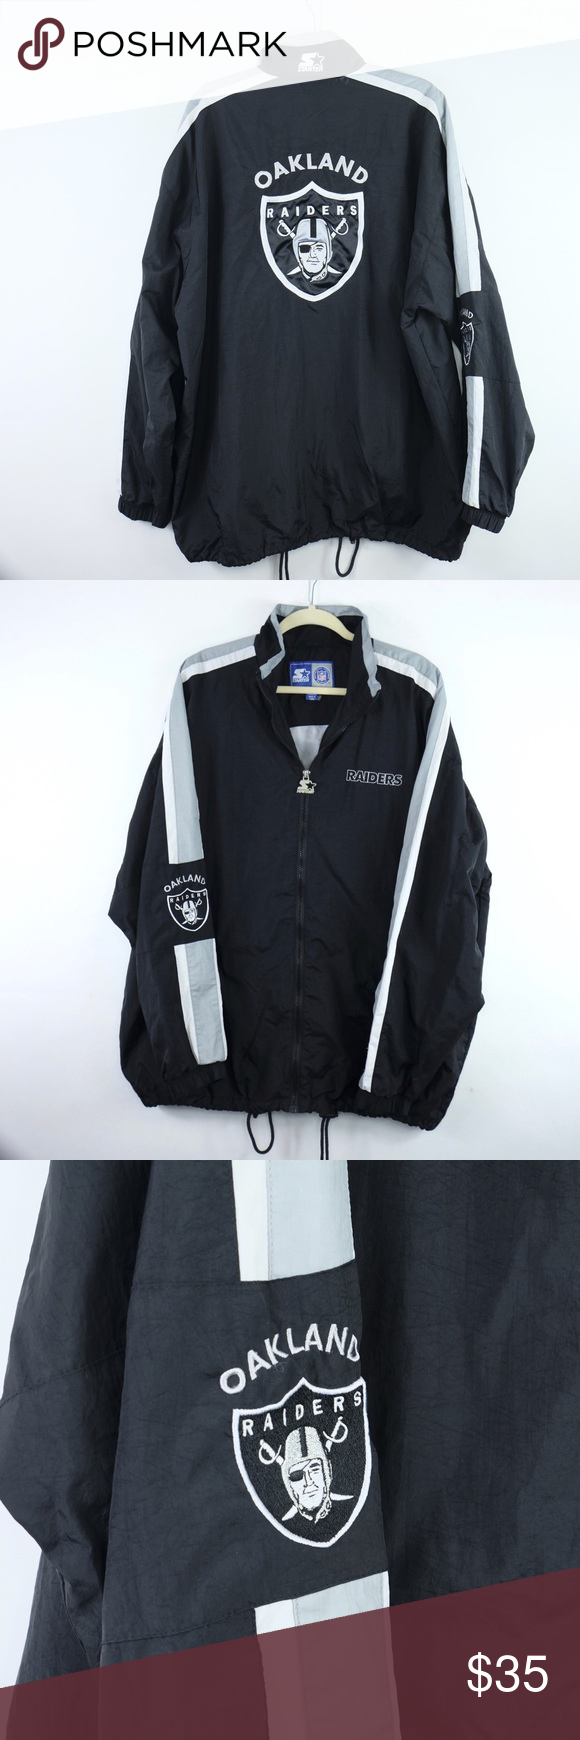 Vintage Starter Oakland Raiders Jacket Xxl 2xl Overall Great Shape Pit To Pit 28 5 Bottom Of Collar To Hem 31 75 Starter Jackets Jackets Xxl Oakland Raiders